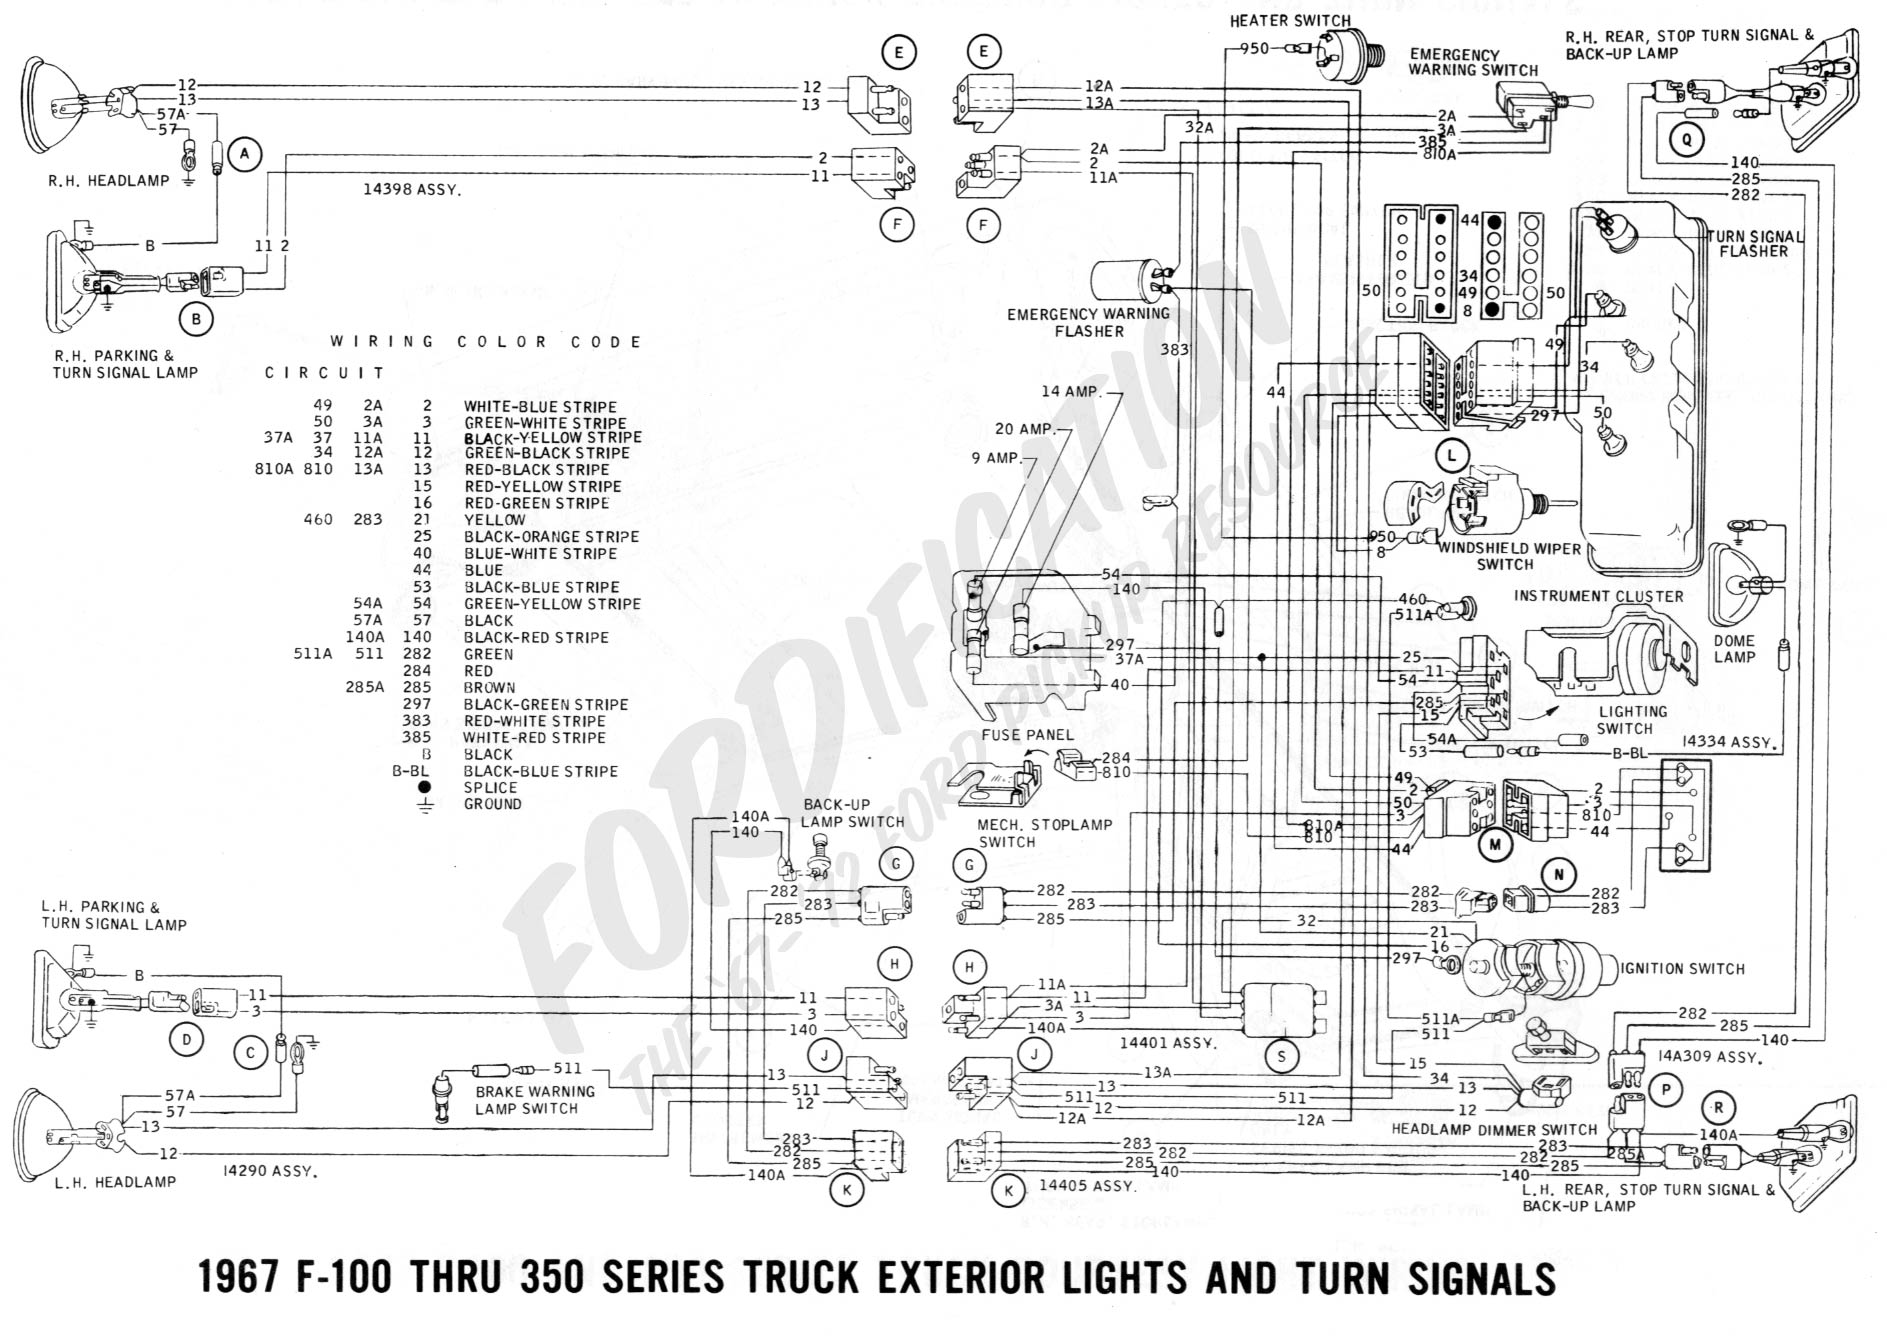 ford truck technical drawings and schematics section h wiring rh fordification com 1966 ford f100 wiring diagram 1966 ford f100 wiring diagram